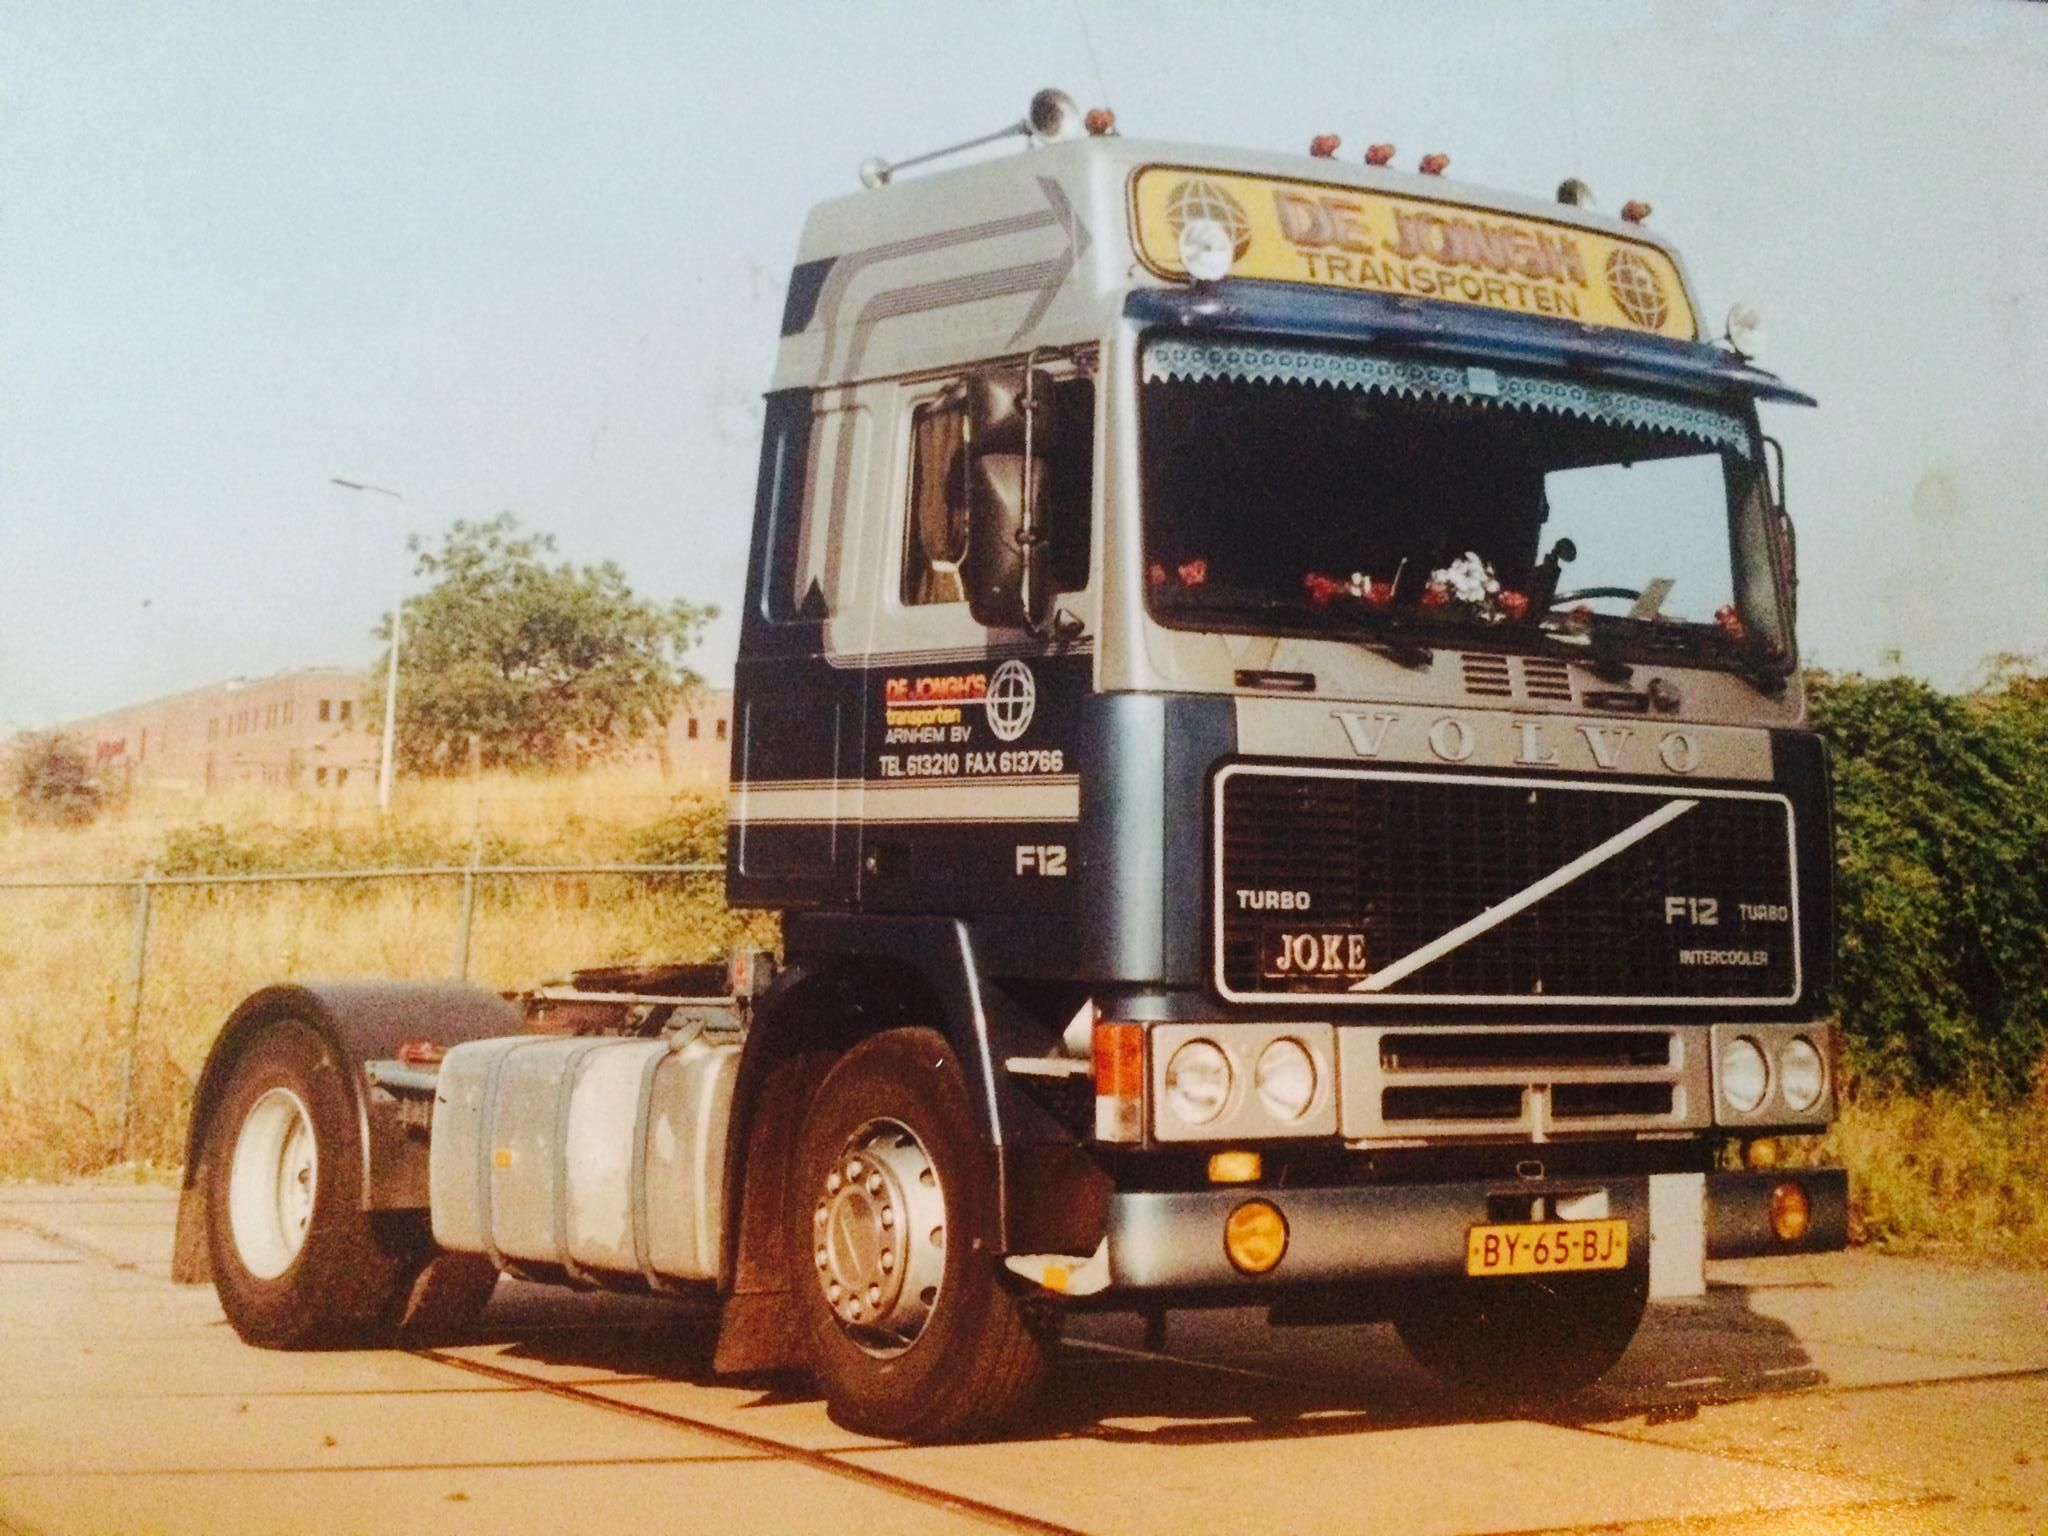 Volvo-F12-BY-65-BJ